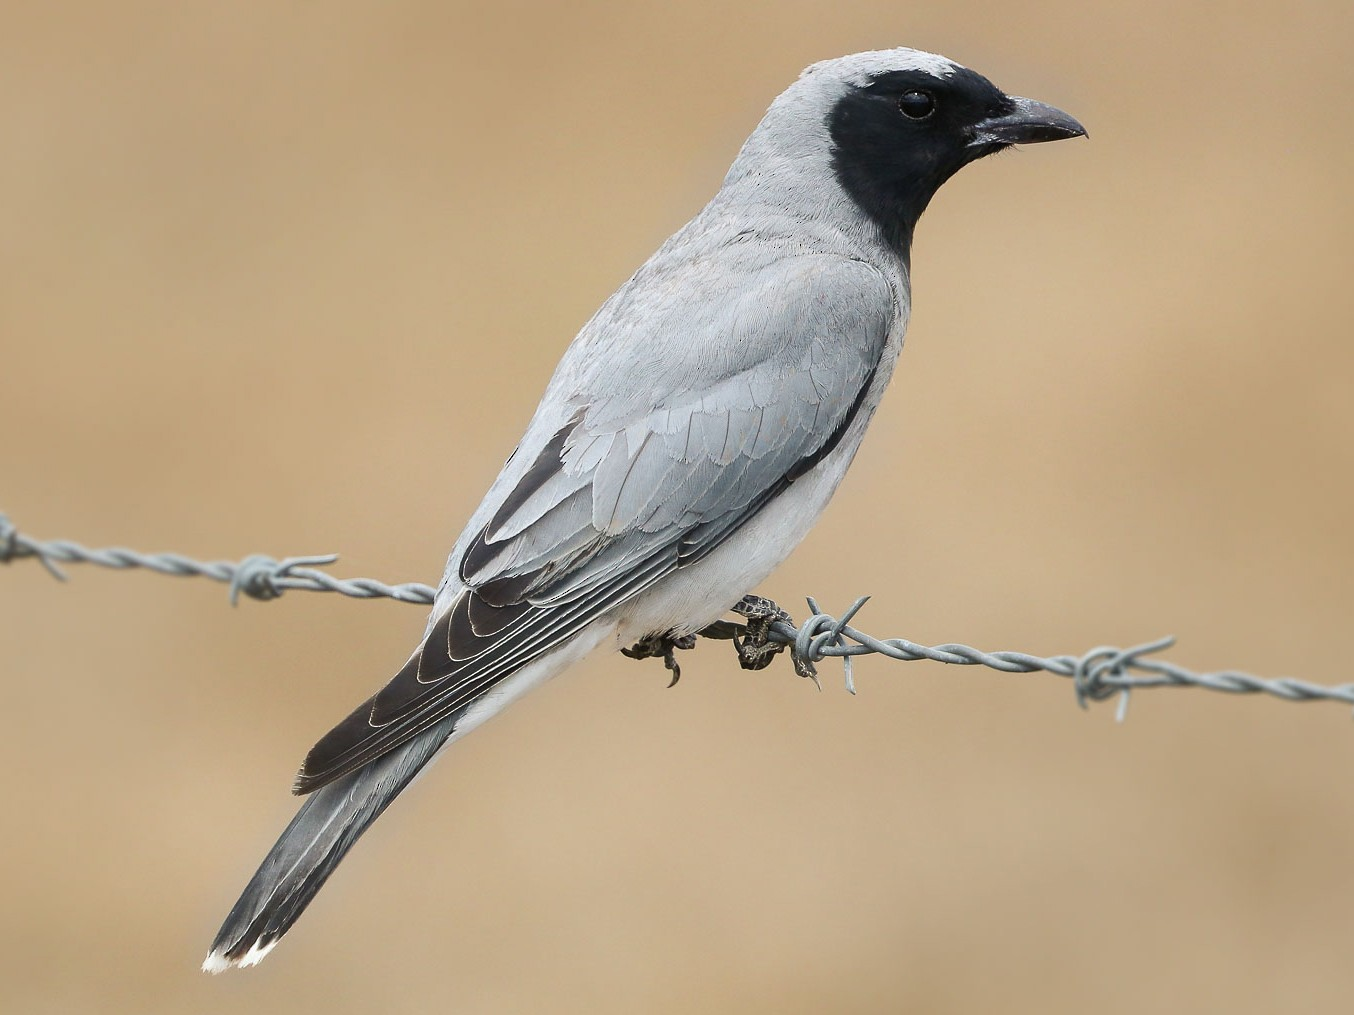 Black-faced Cuckooshrike - Ged Tranter